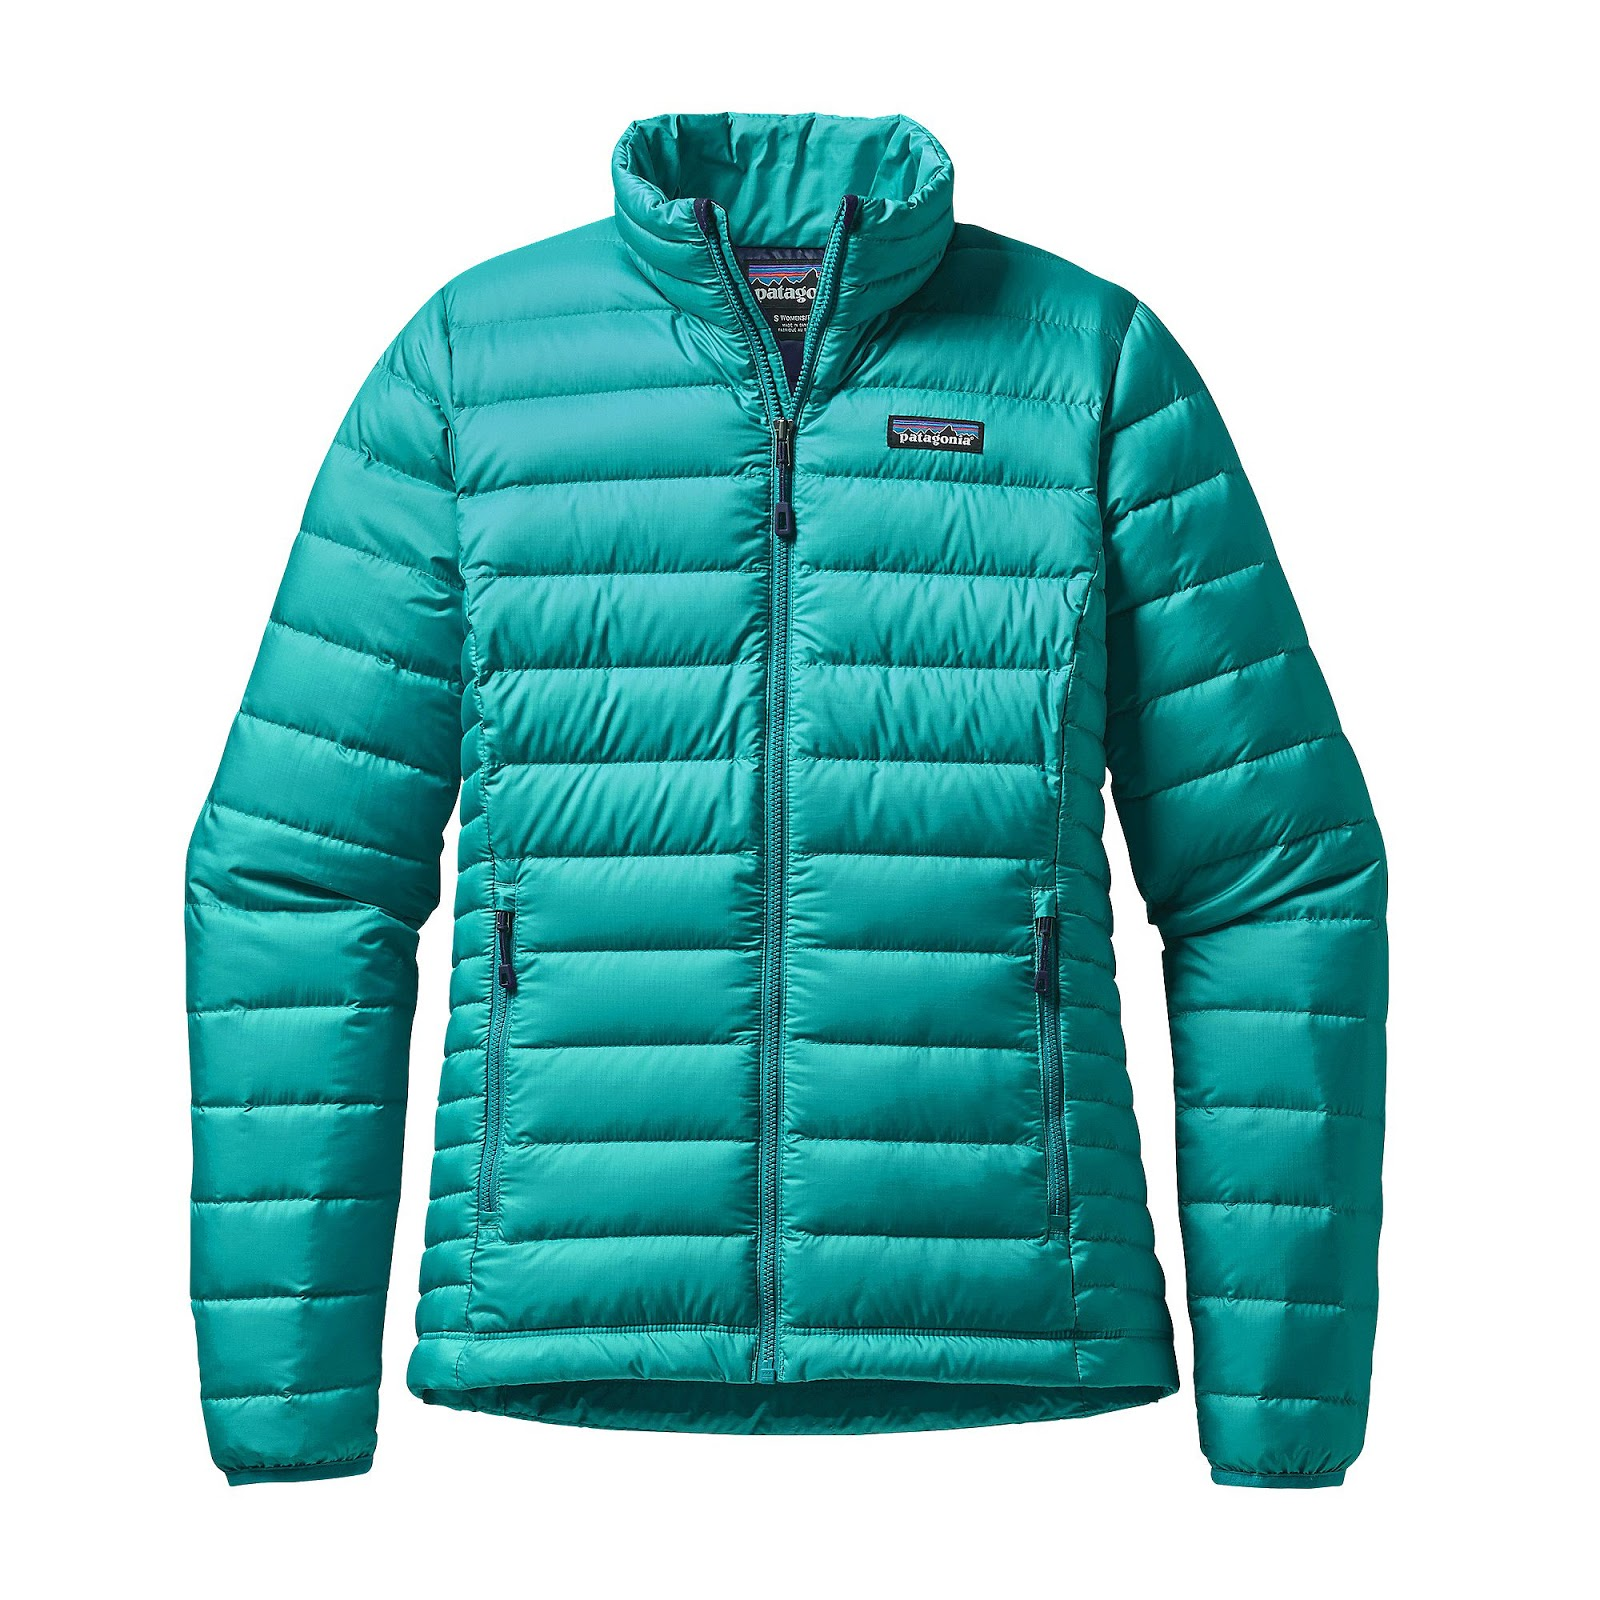 What To Wear While Hiking In Winter For Women